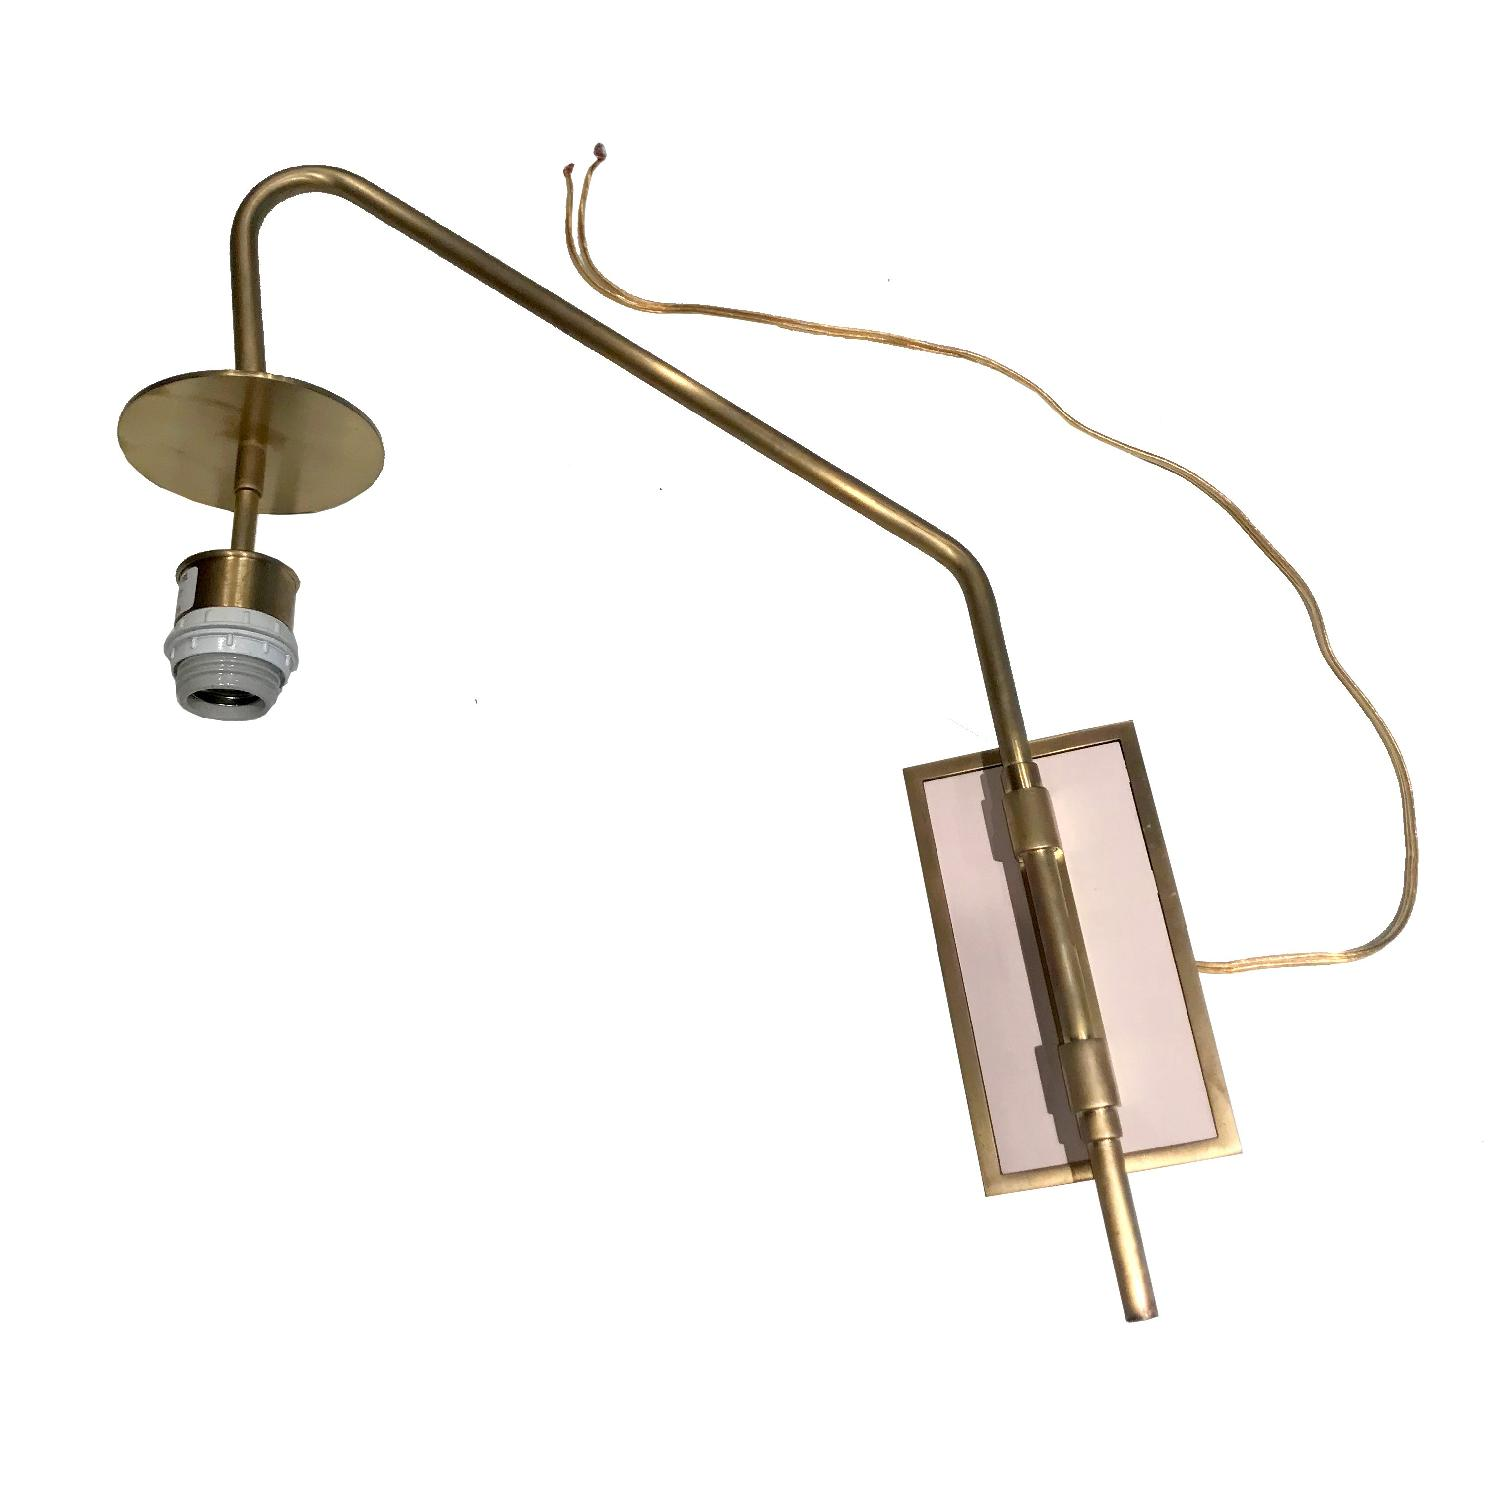 Urban Electric Co. Audley Wall Lamp w/o Shade